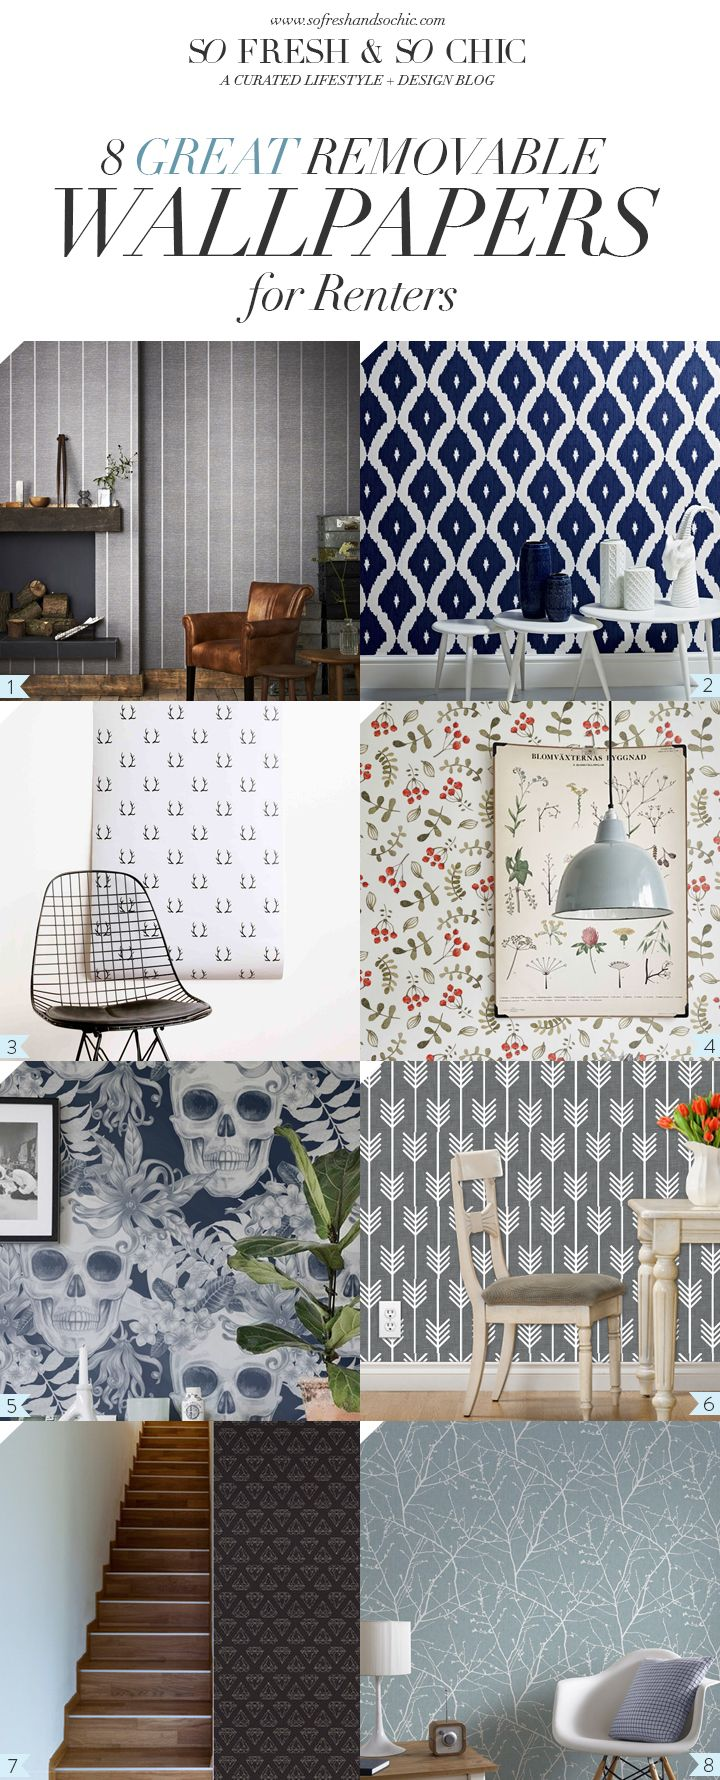 removable wallpaper for renters For the Home] 8 Great Removable Wallpapers for Renters | Wallpaper  removable wallpaper for renters